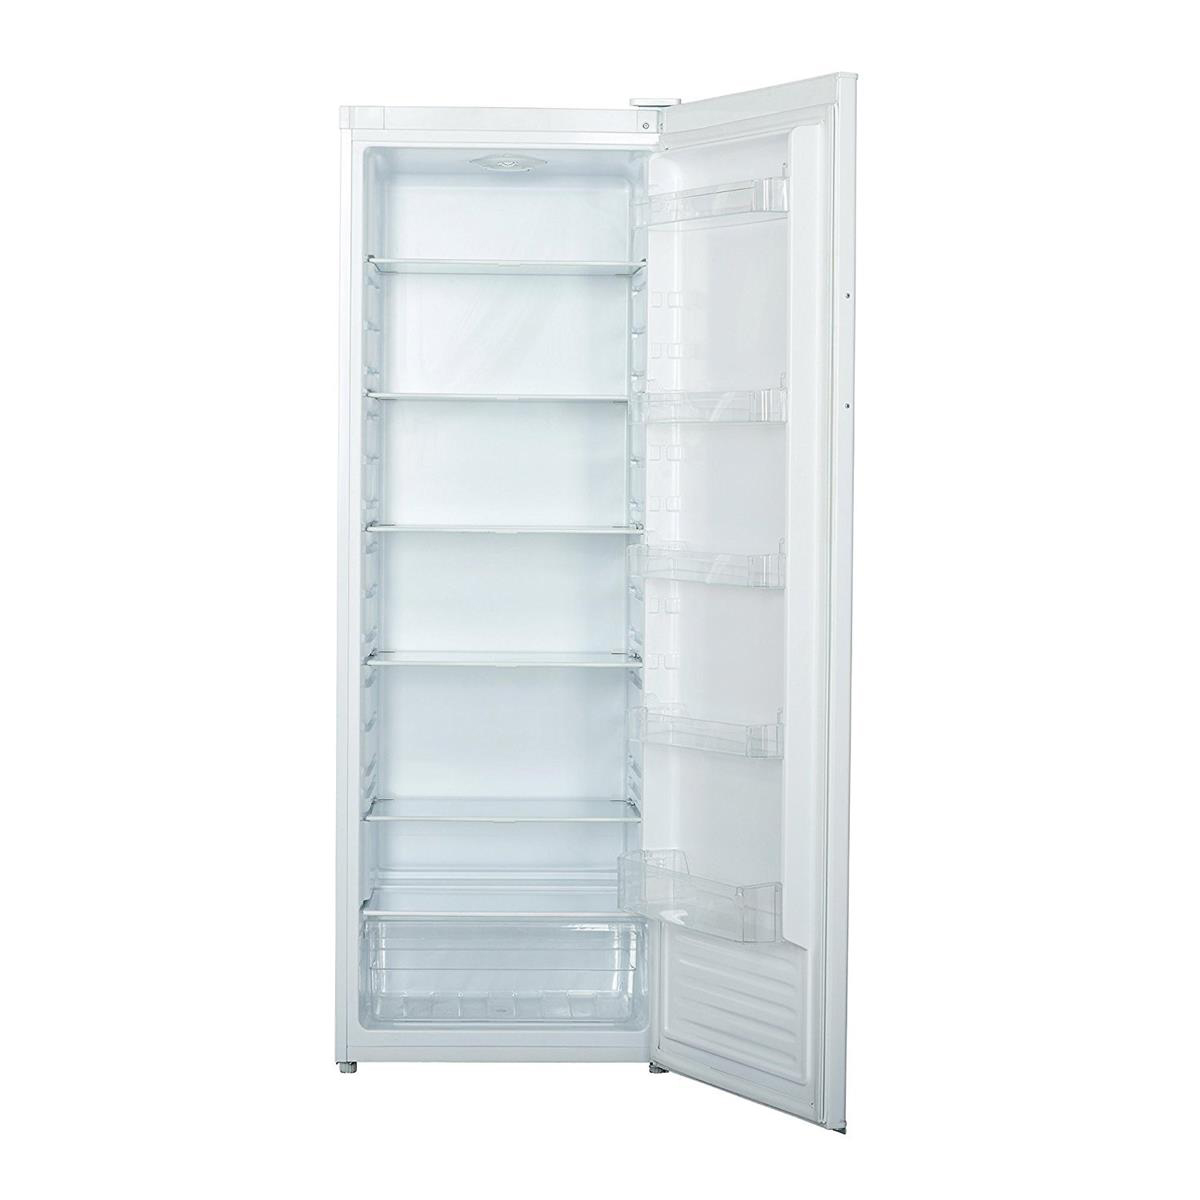 Statesman Larder Fridge A+ Rating 5 Shelves 335 Litre White Ref TL335LW